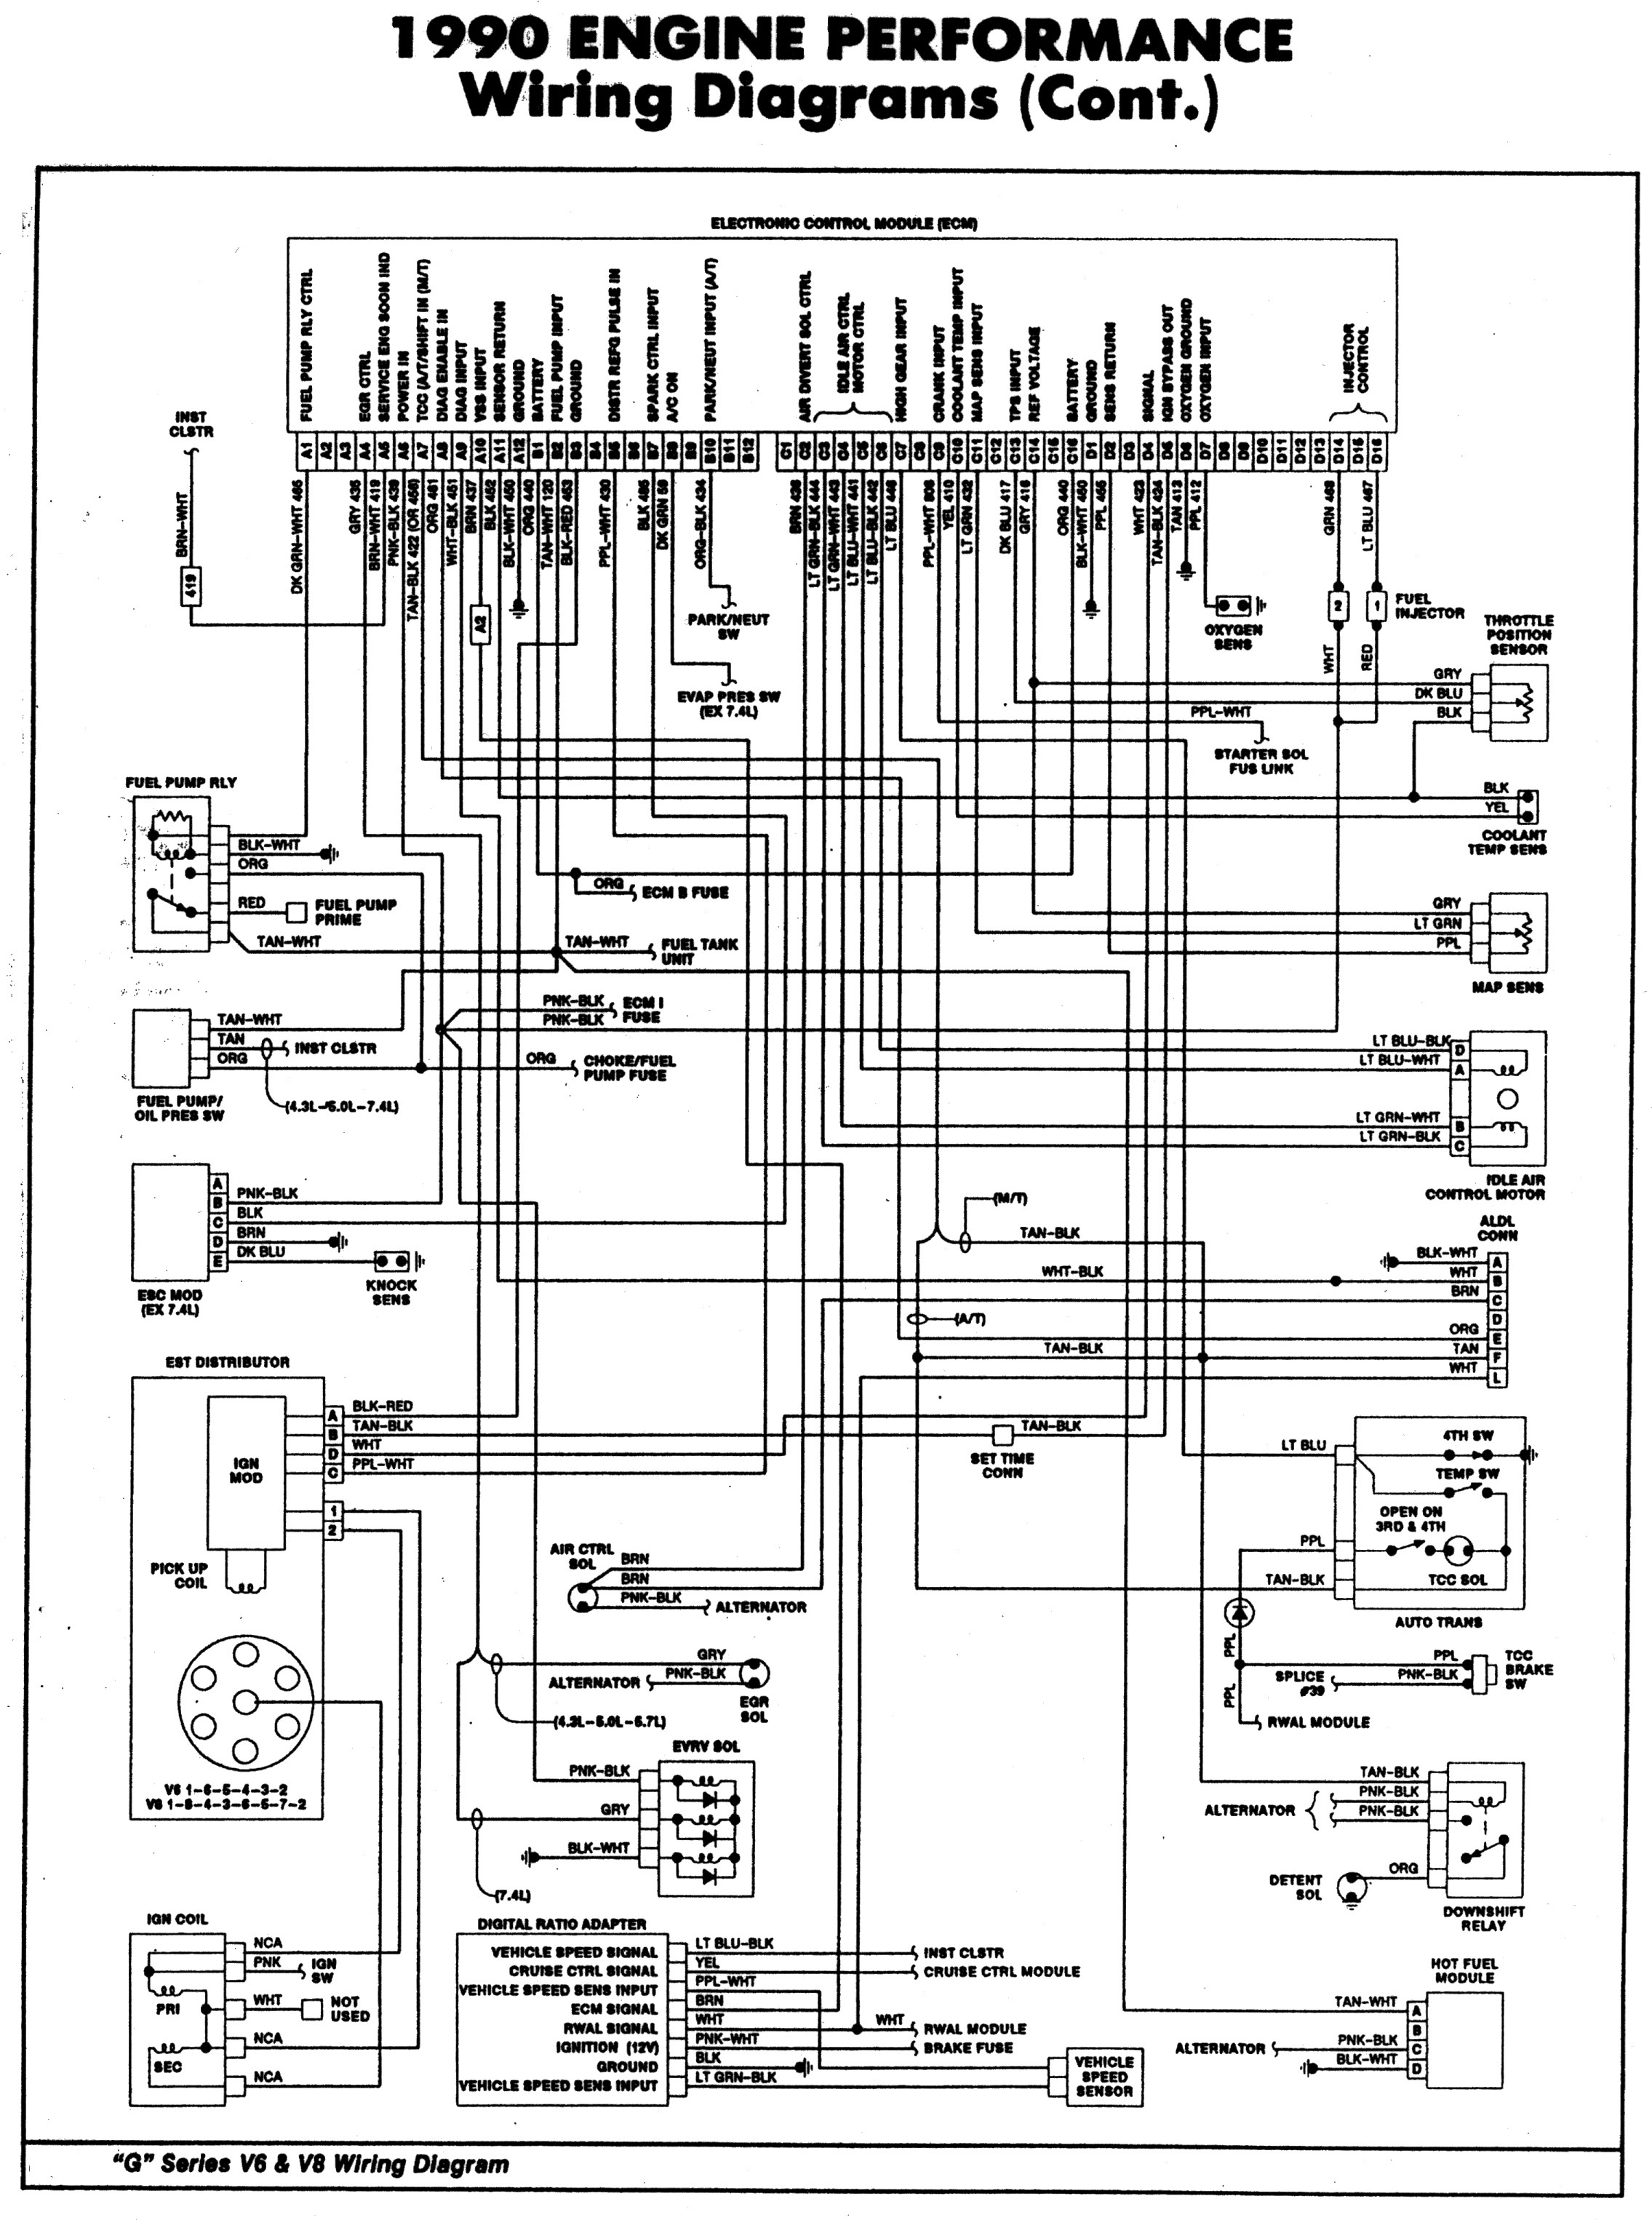 medium resolution of 91 chevy lumina wiring diagram wiring diagram data today 1990 chevy lumina engine diagram